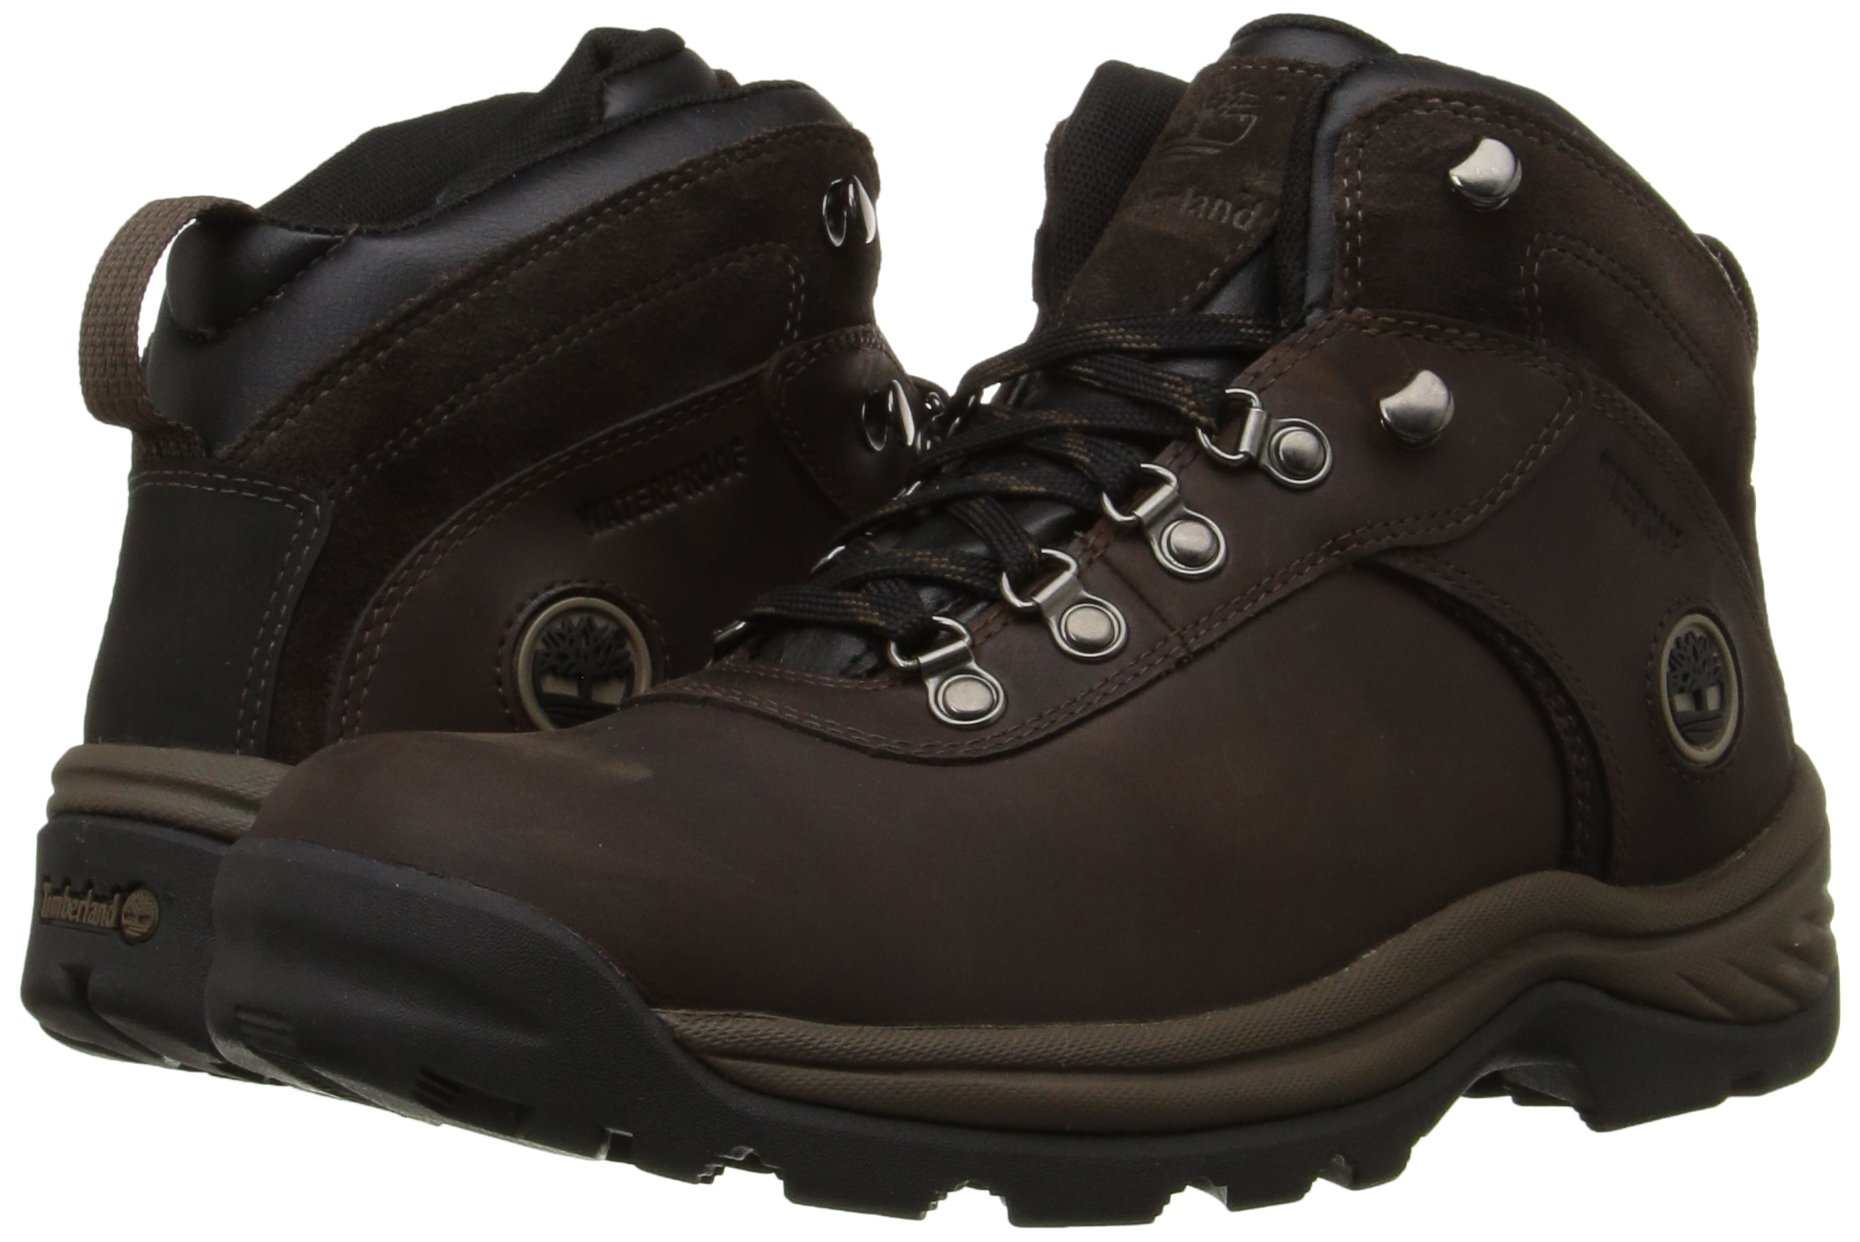 Timberland Men's Flume Waterproof Boot,Dark Brown,13 M US by Timberland (Image #6)